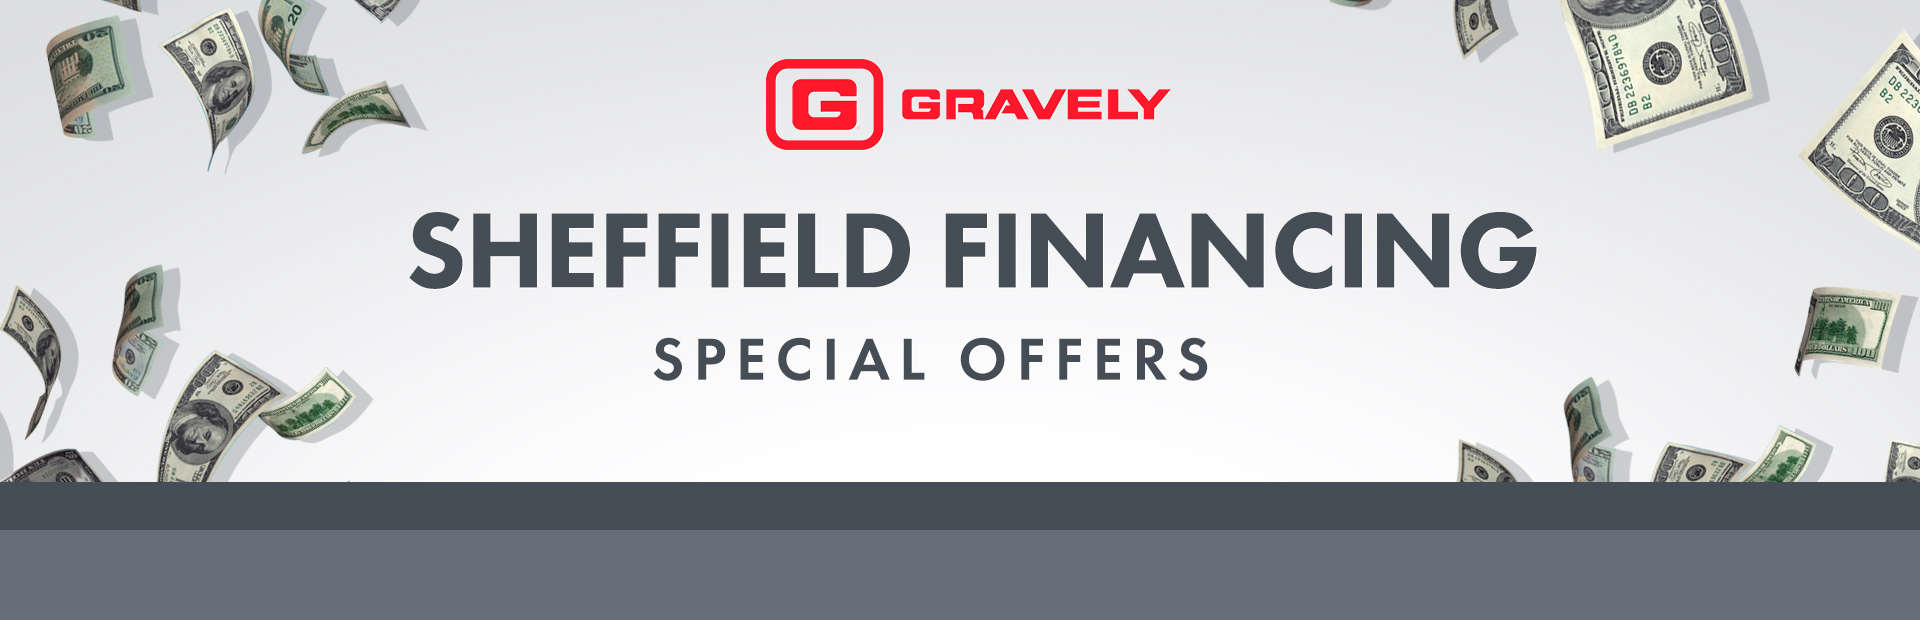 Gravely: Sheffield Financing - Special Offers